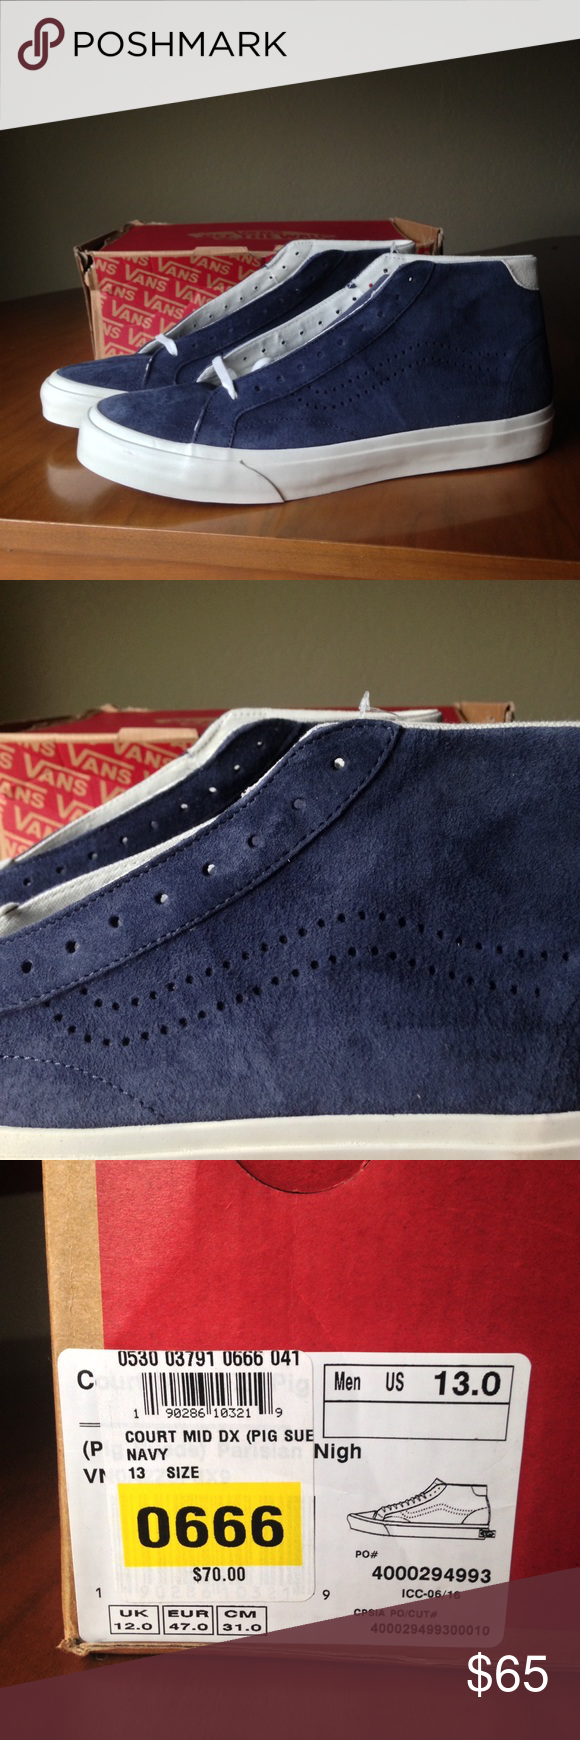 Men s Vans SZ 13 navy Blue court mid pig suede sk8 Brand new with box men s  Vans skate shoes. These are a navy suede shoe. High top. US size 13 83d89f0e4